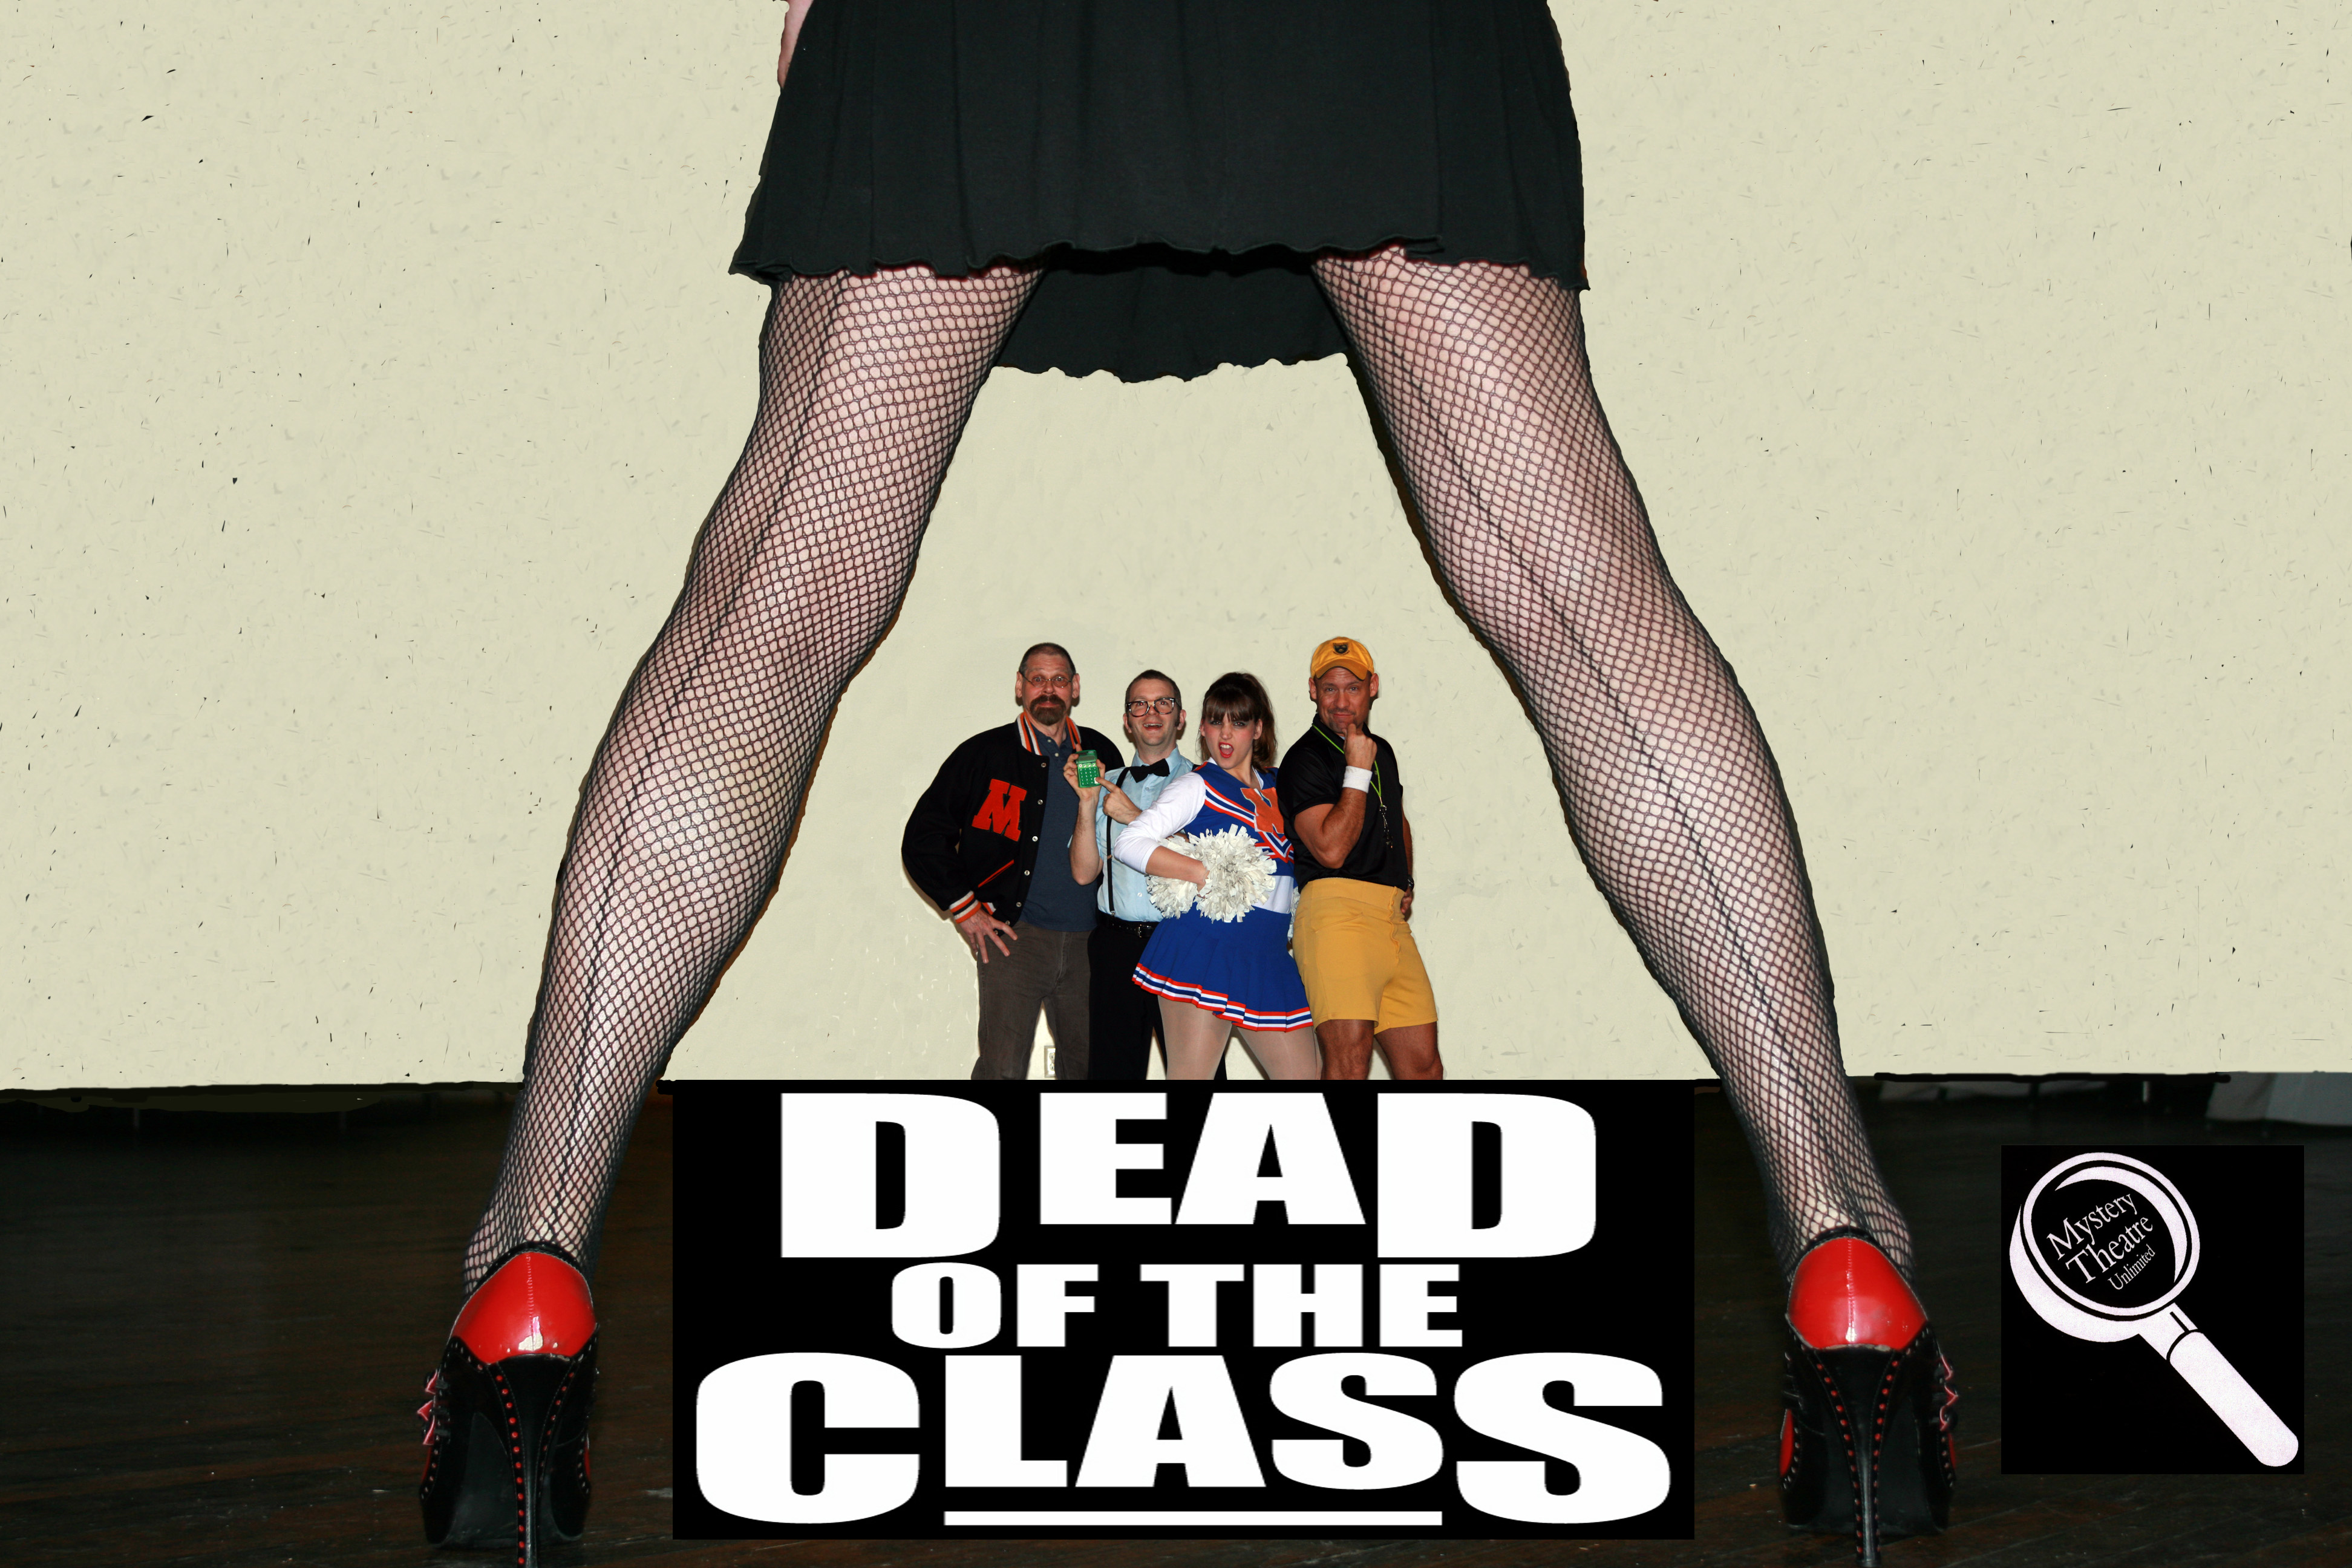 Dead of the Class